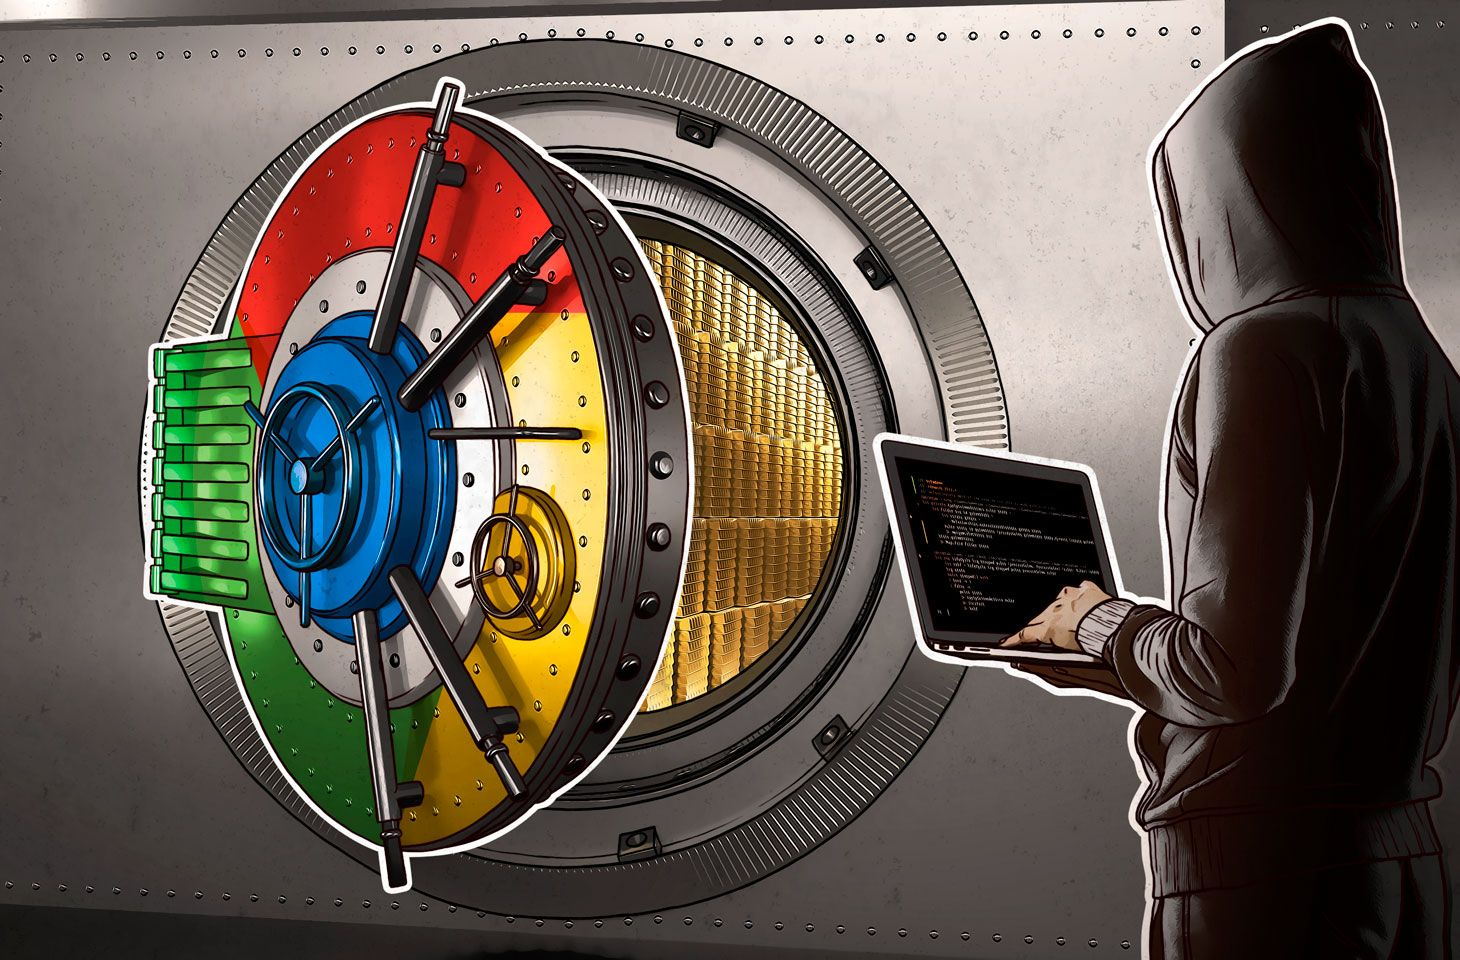 Passwords, credit card numbers, and other data stored in the browser can be stolen by malware on your computer